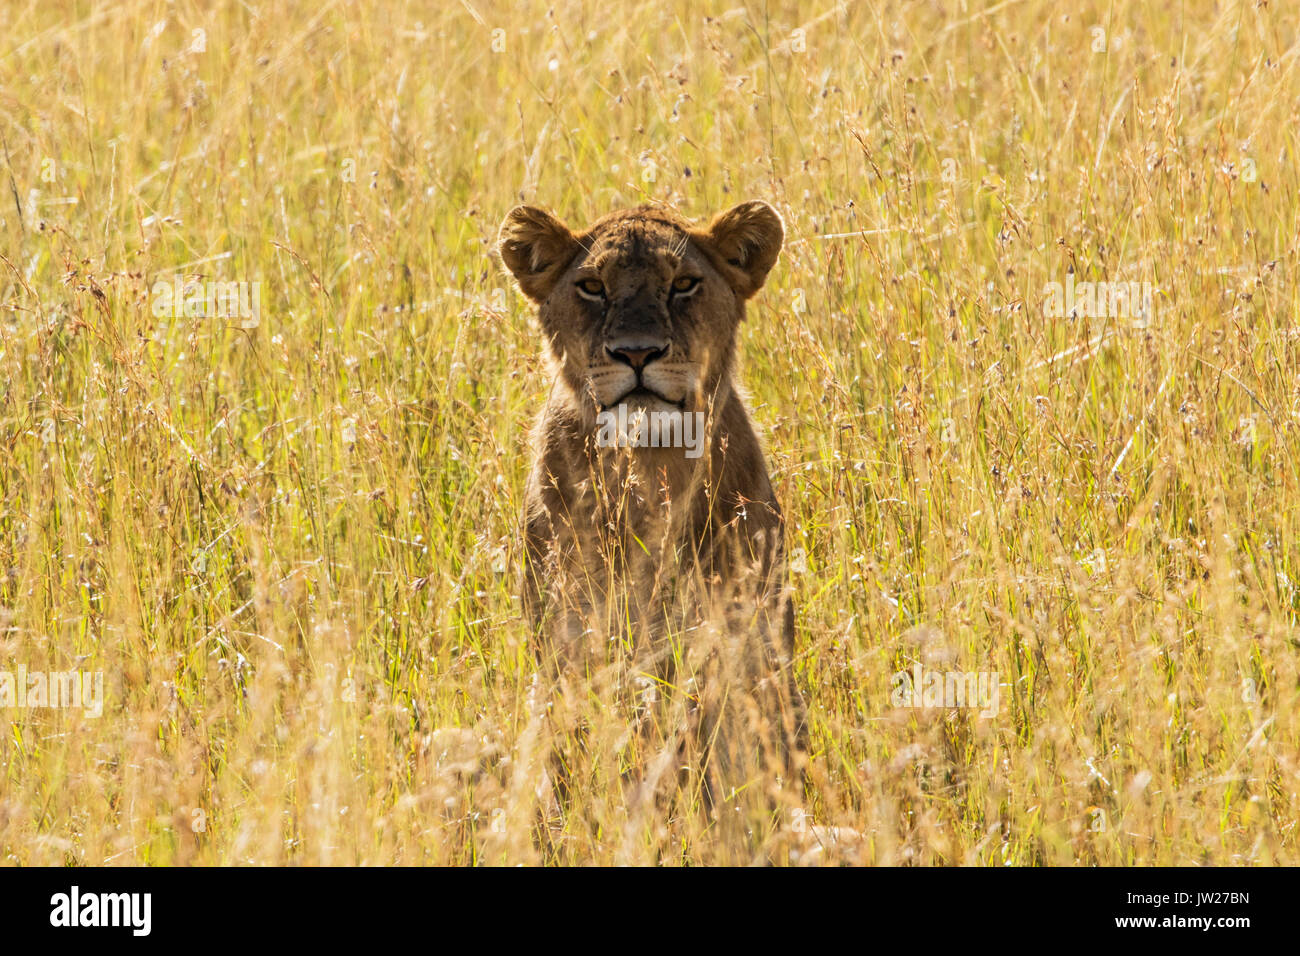 Lioness (Panthera leo) couching among the tall grass, looking at the camera - Stock Image